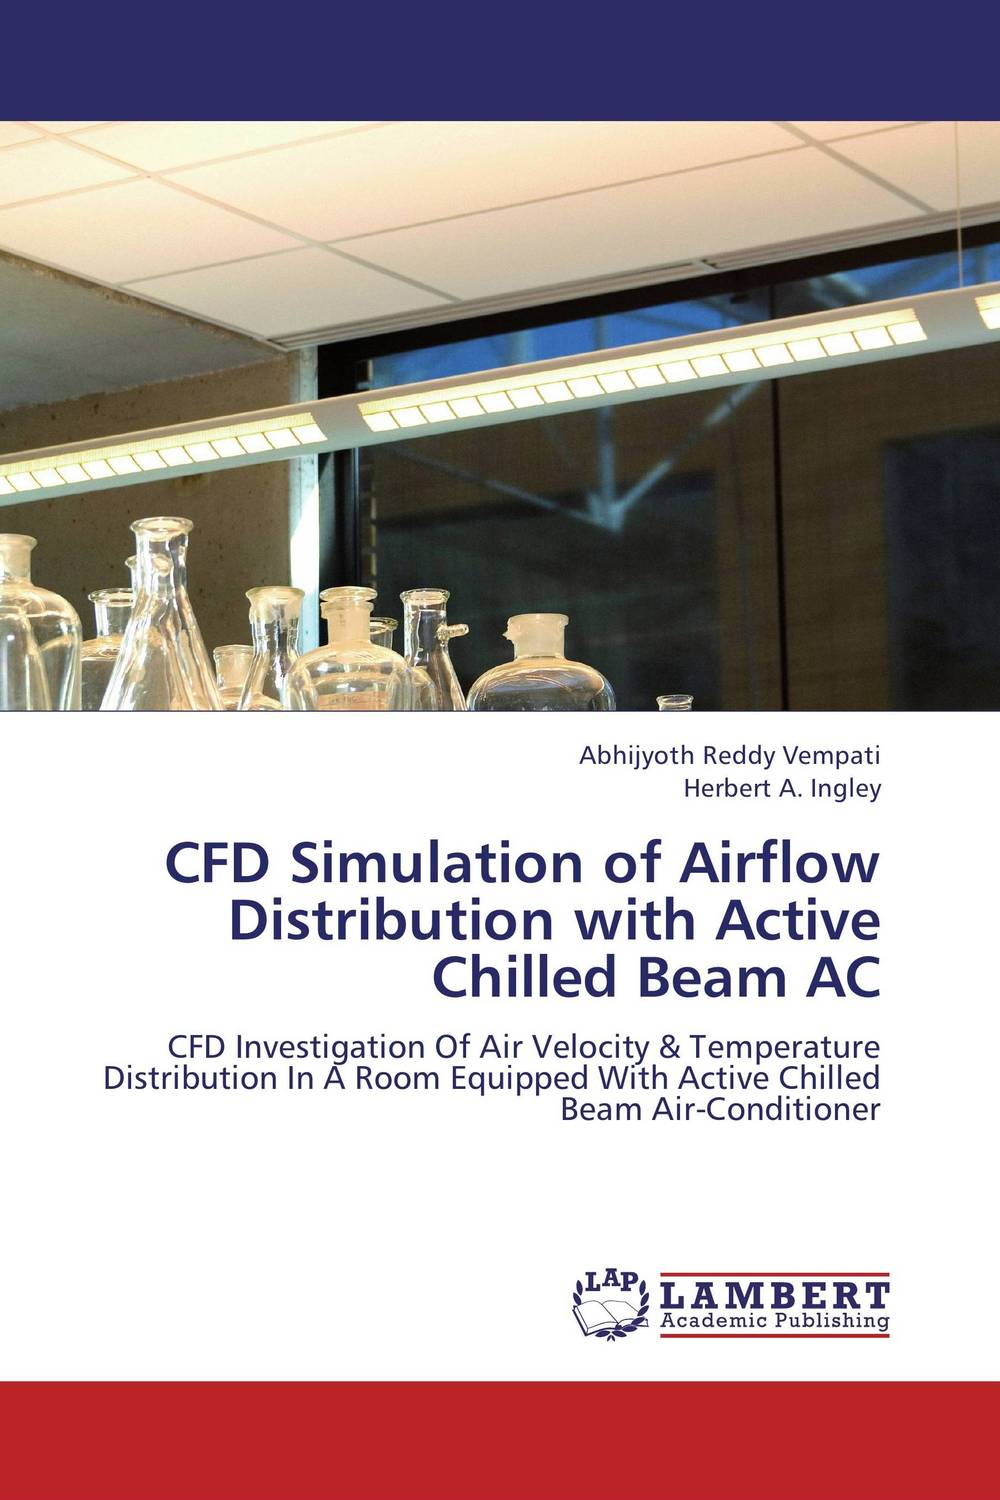 CFD Simulation of Airflow Distribution with Active Chilled Beam AC nitul kalita and rahul dev misra cfd analysis of room air distribution